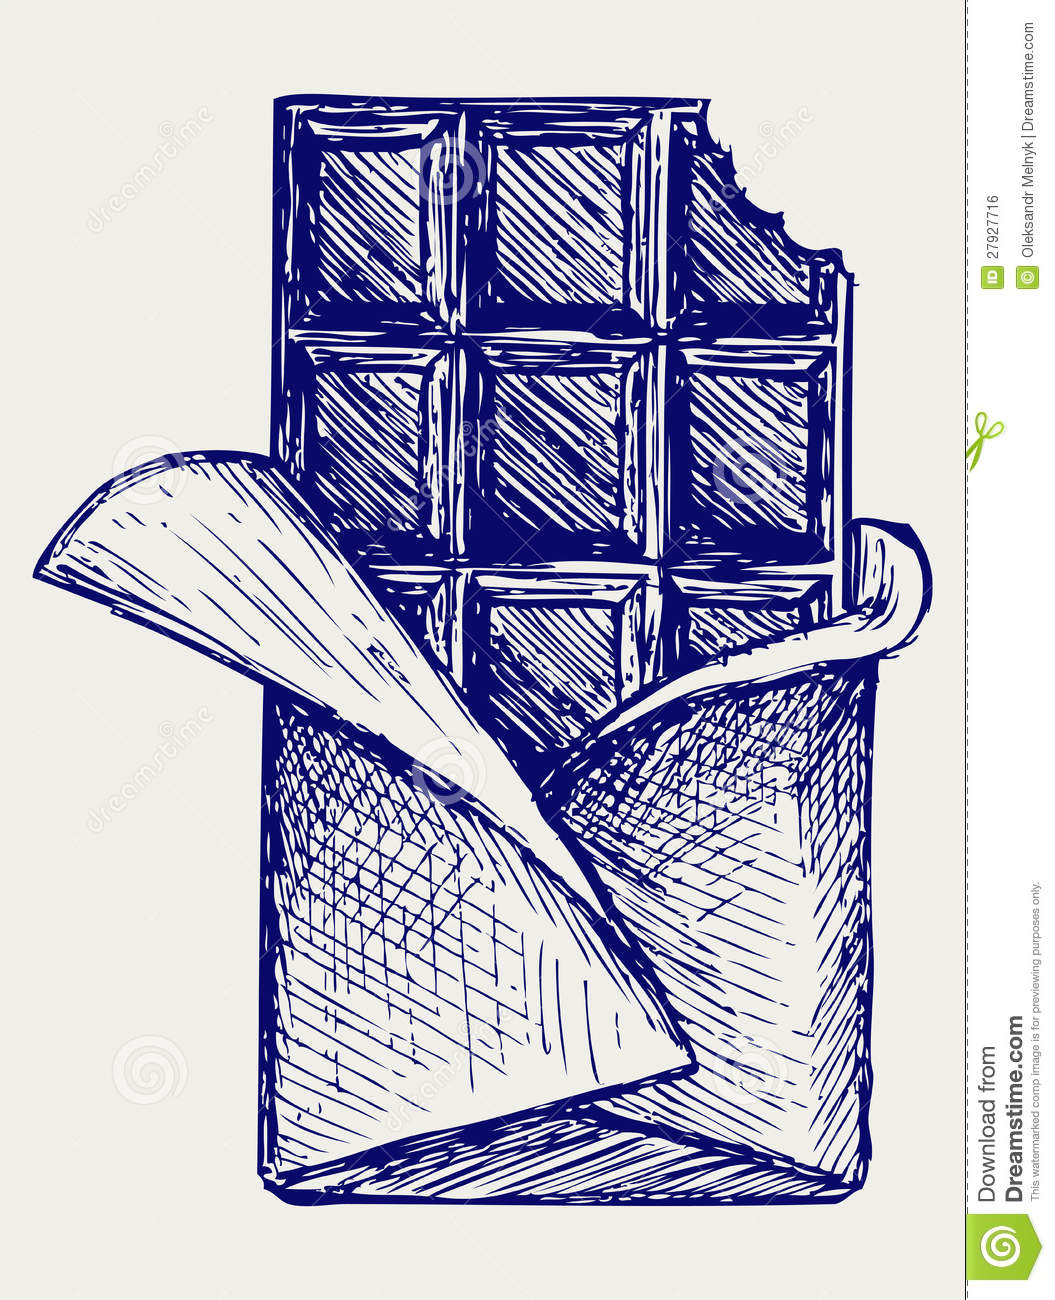 Chocolate. Doodle Style Stock Vector. Illustration Of Design - 27927716